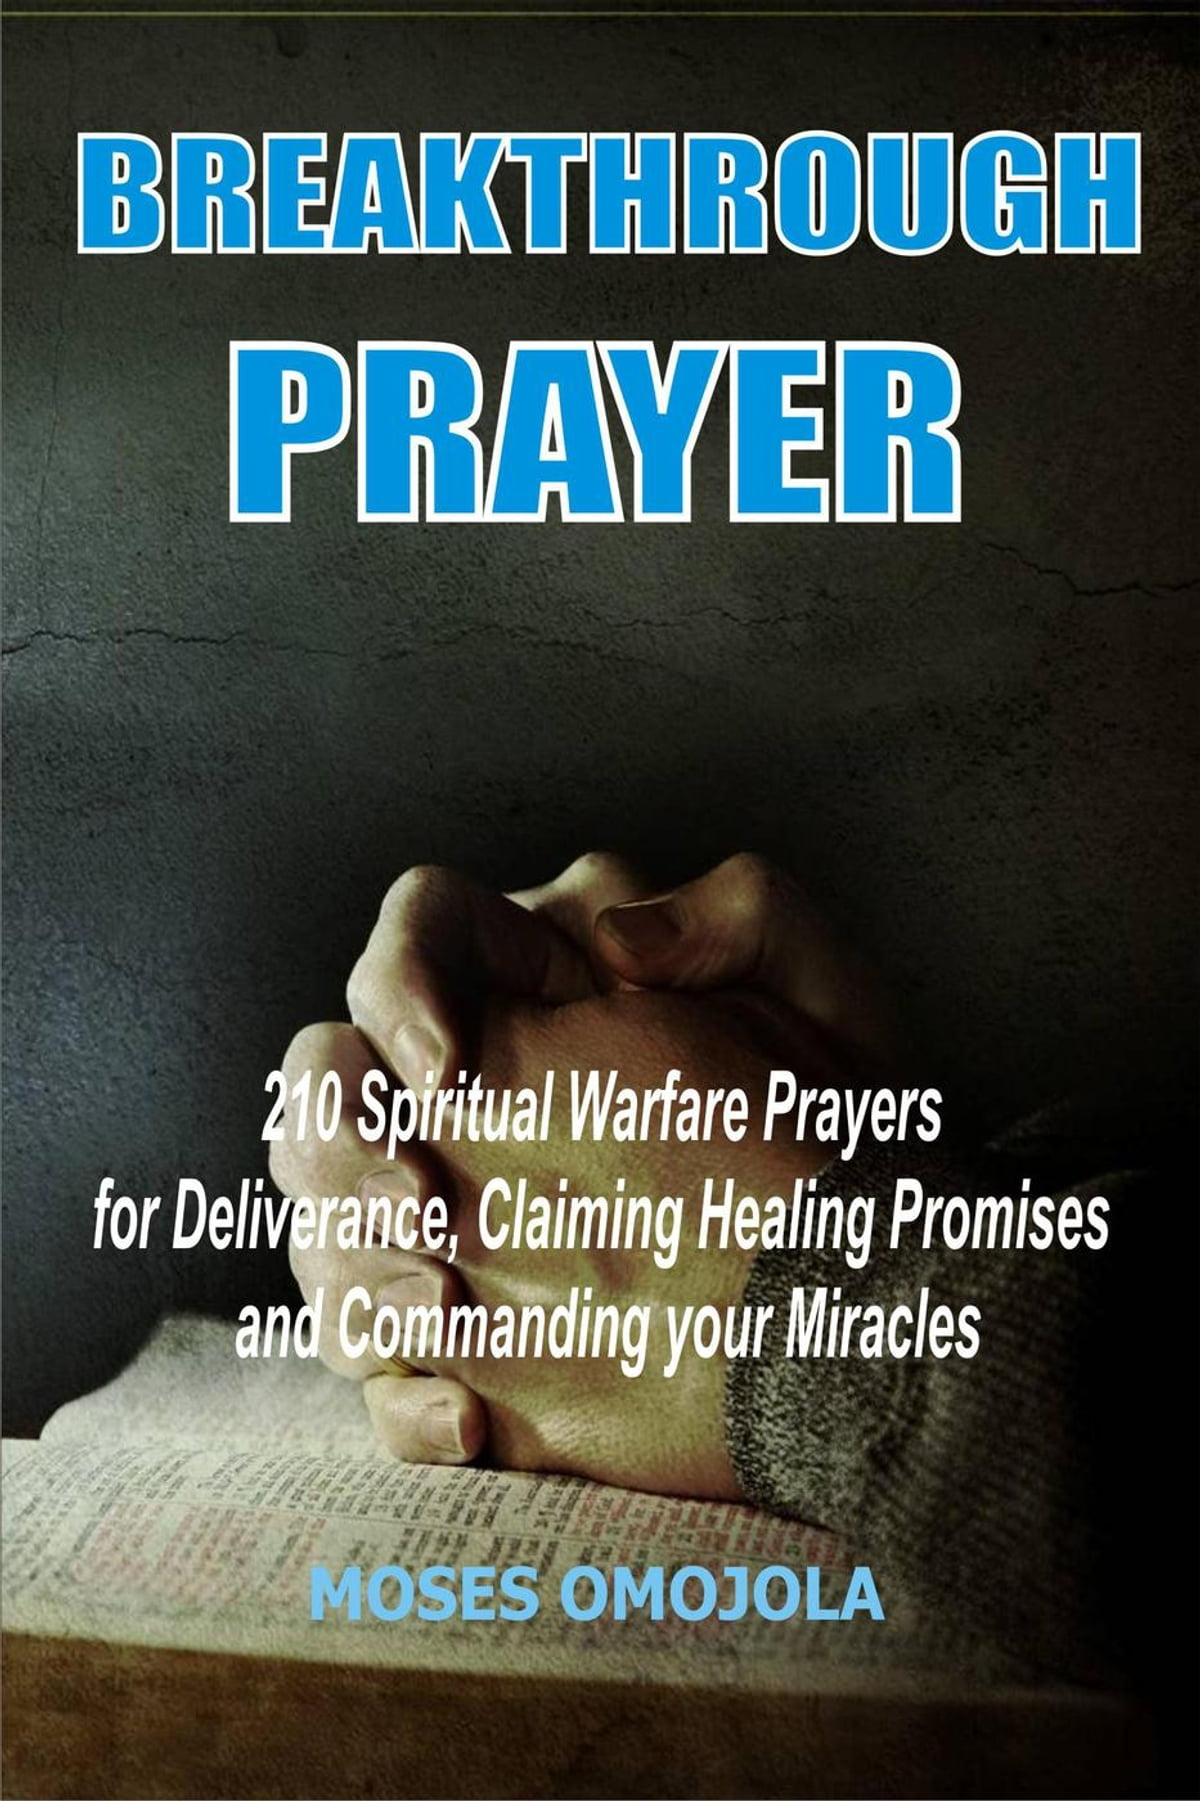 Breakthrough Prayer: 210 Spiritual Warfare Prayers For Deliverance,  Claiming Healing Promises And Commanding Your Miracles eBook by Moses  Omojola ...